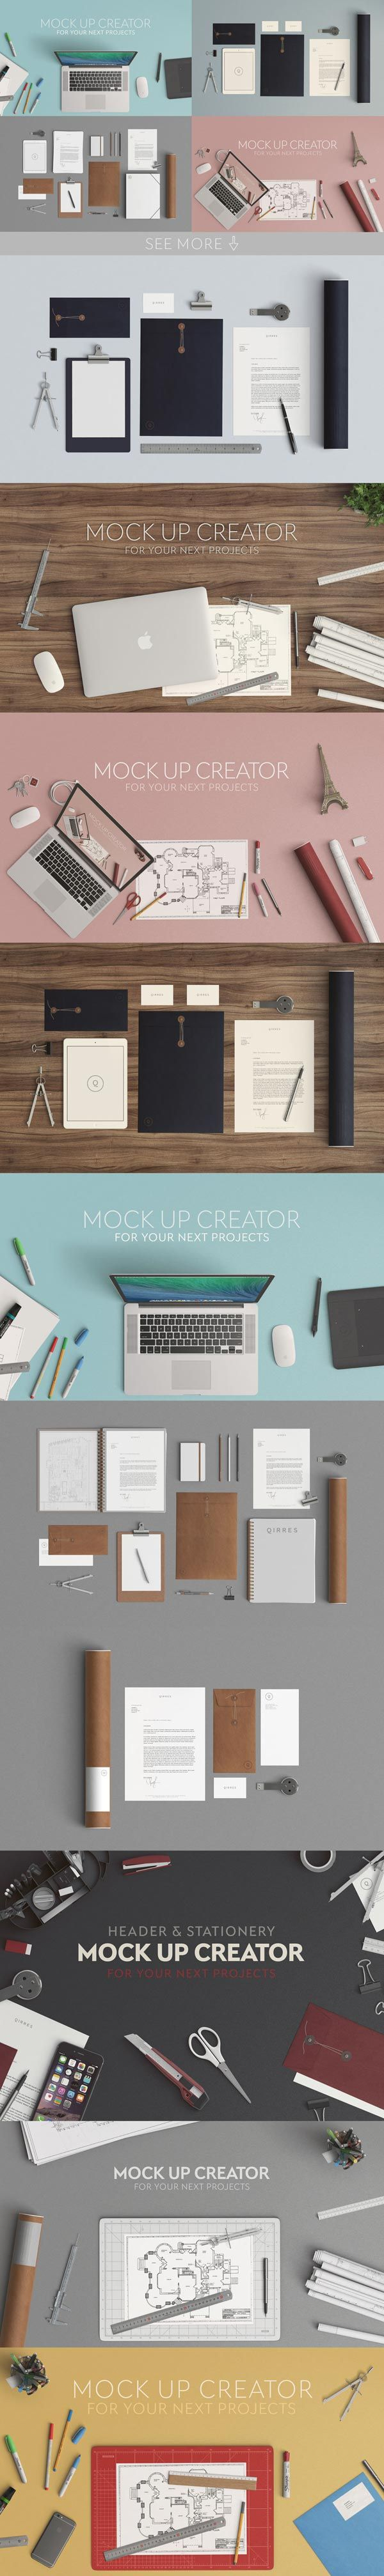 The perfect mock up creater for your next design and identity projects. #mockup…